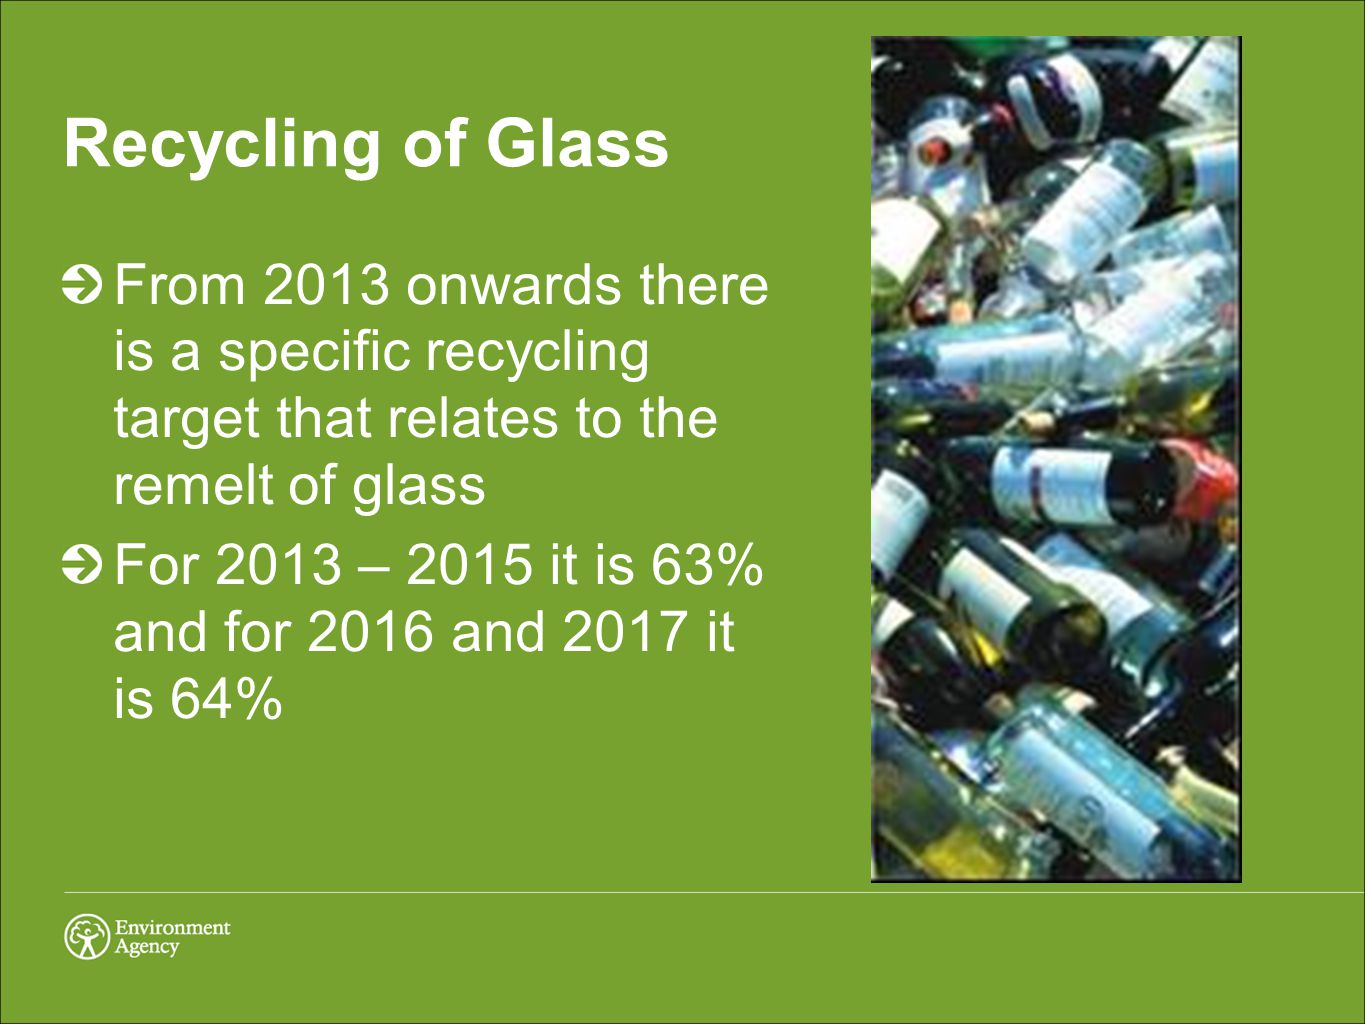 Recycling of Glass From 2013 onwards there is a specific recycling target that relates to the remelt of glass For 2013 – 2015 it is 63% and for 2016 and 2017 it is 64%